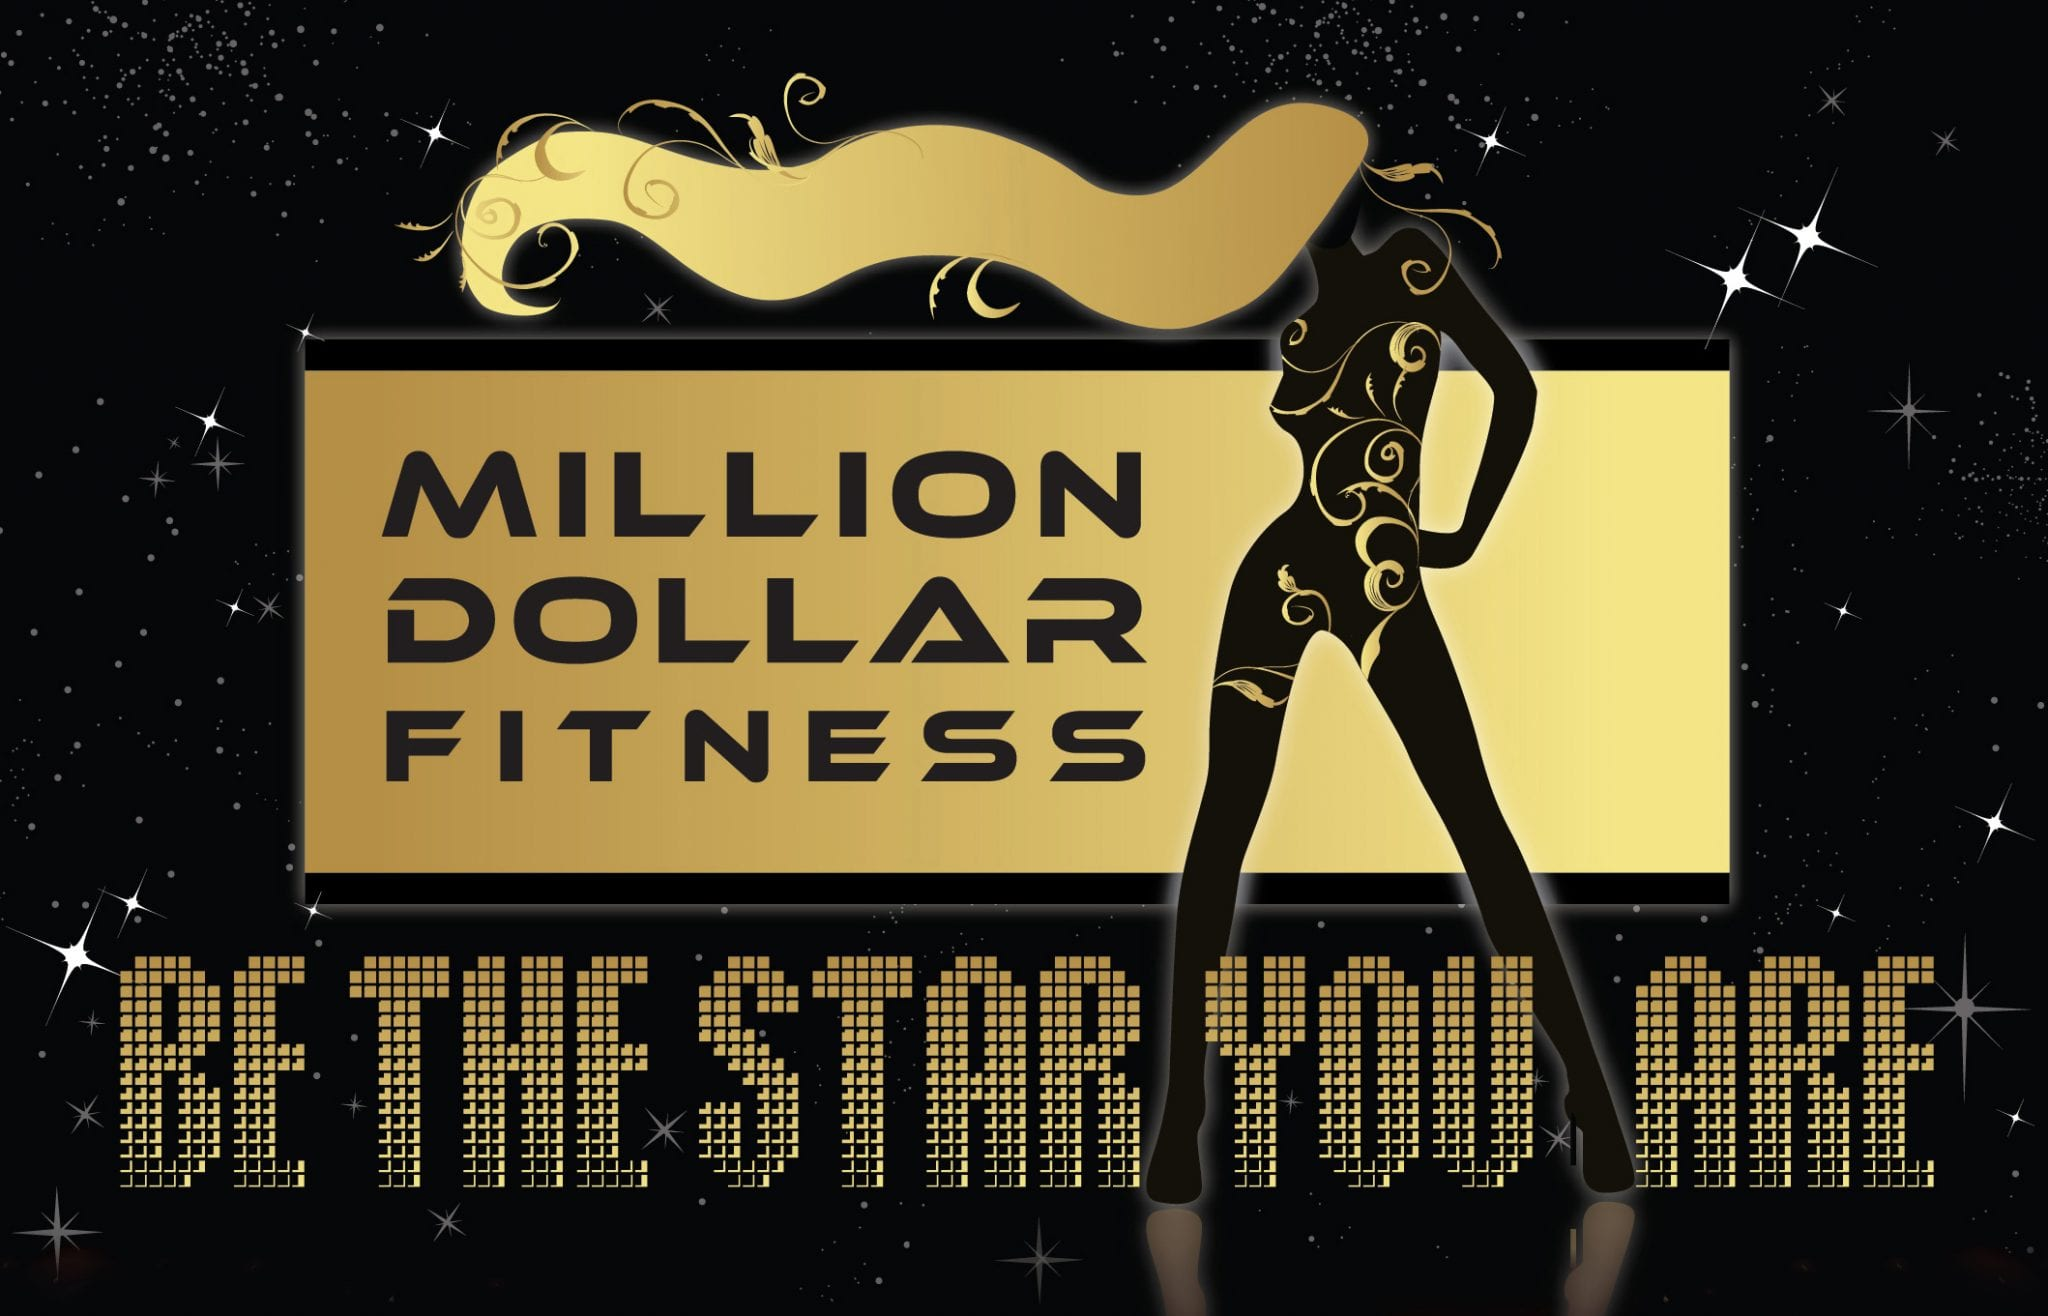 Million Dollar Fitness logo